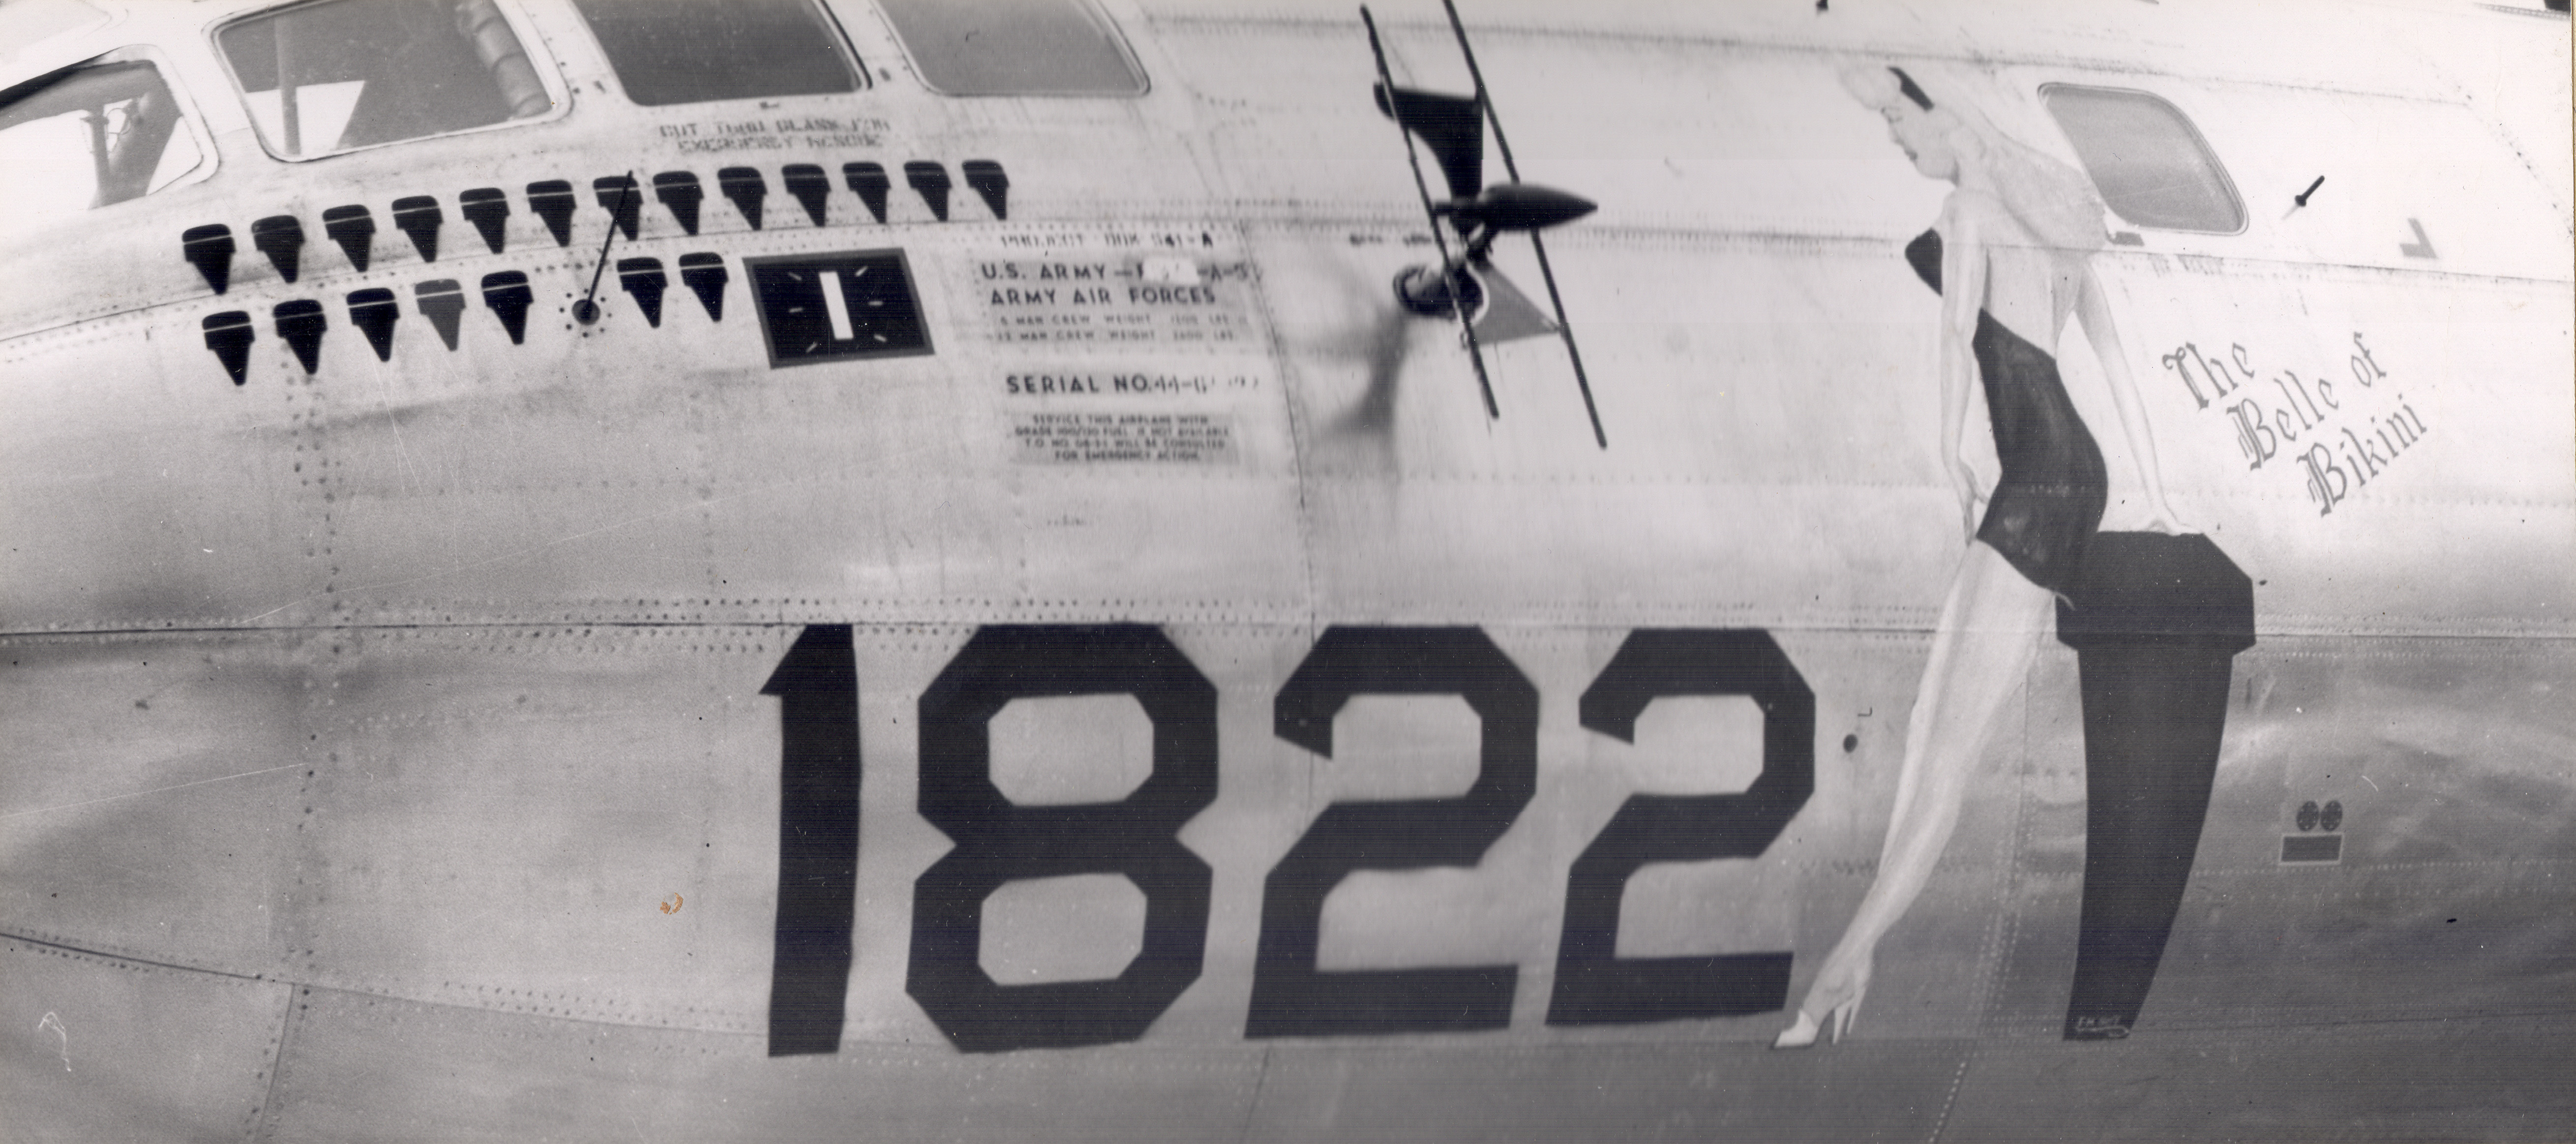 The Belle of Bikini, Airplane Nose Art, 1945-1946